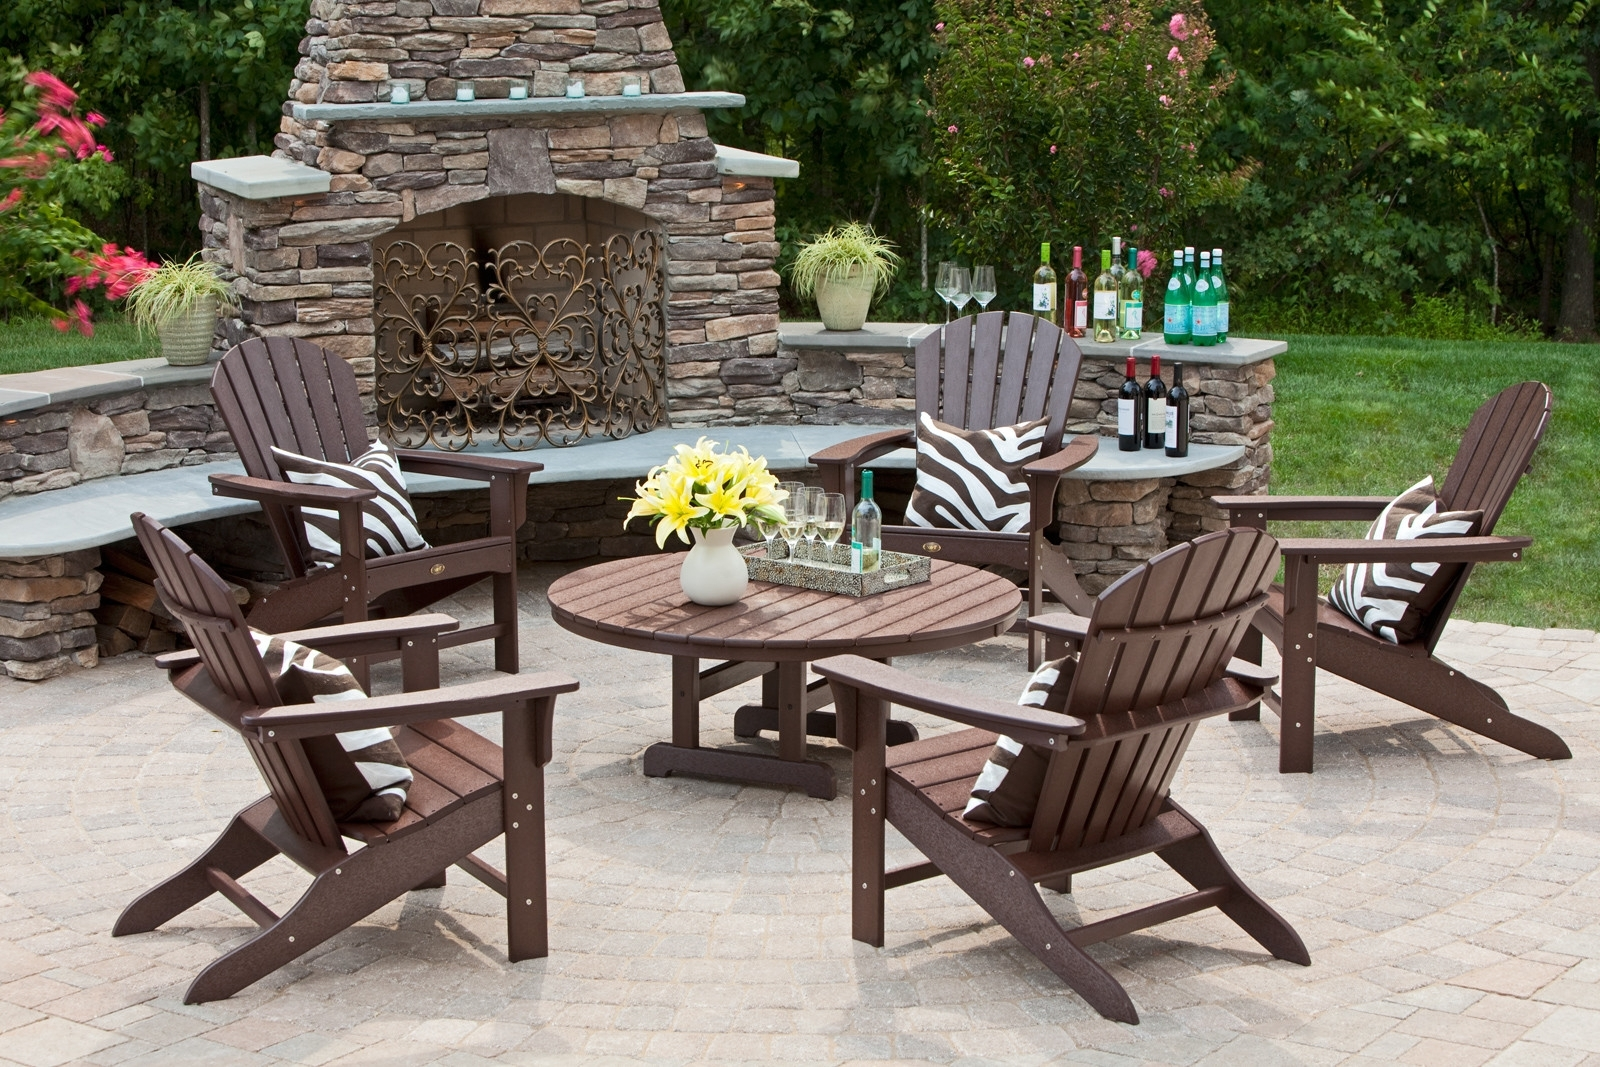 2018 Patio Conversation Sets Costco Best Patio Furniture Under $500 4 Pertaining To Patio Conversation Sets Under $ (View 1 of 20)